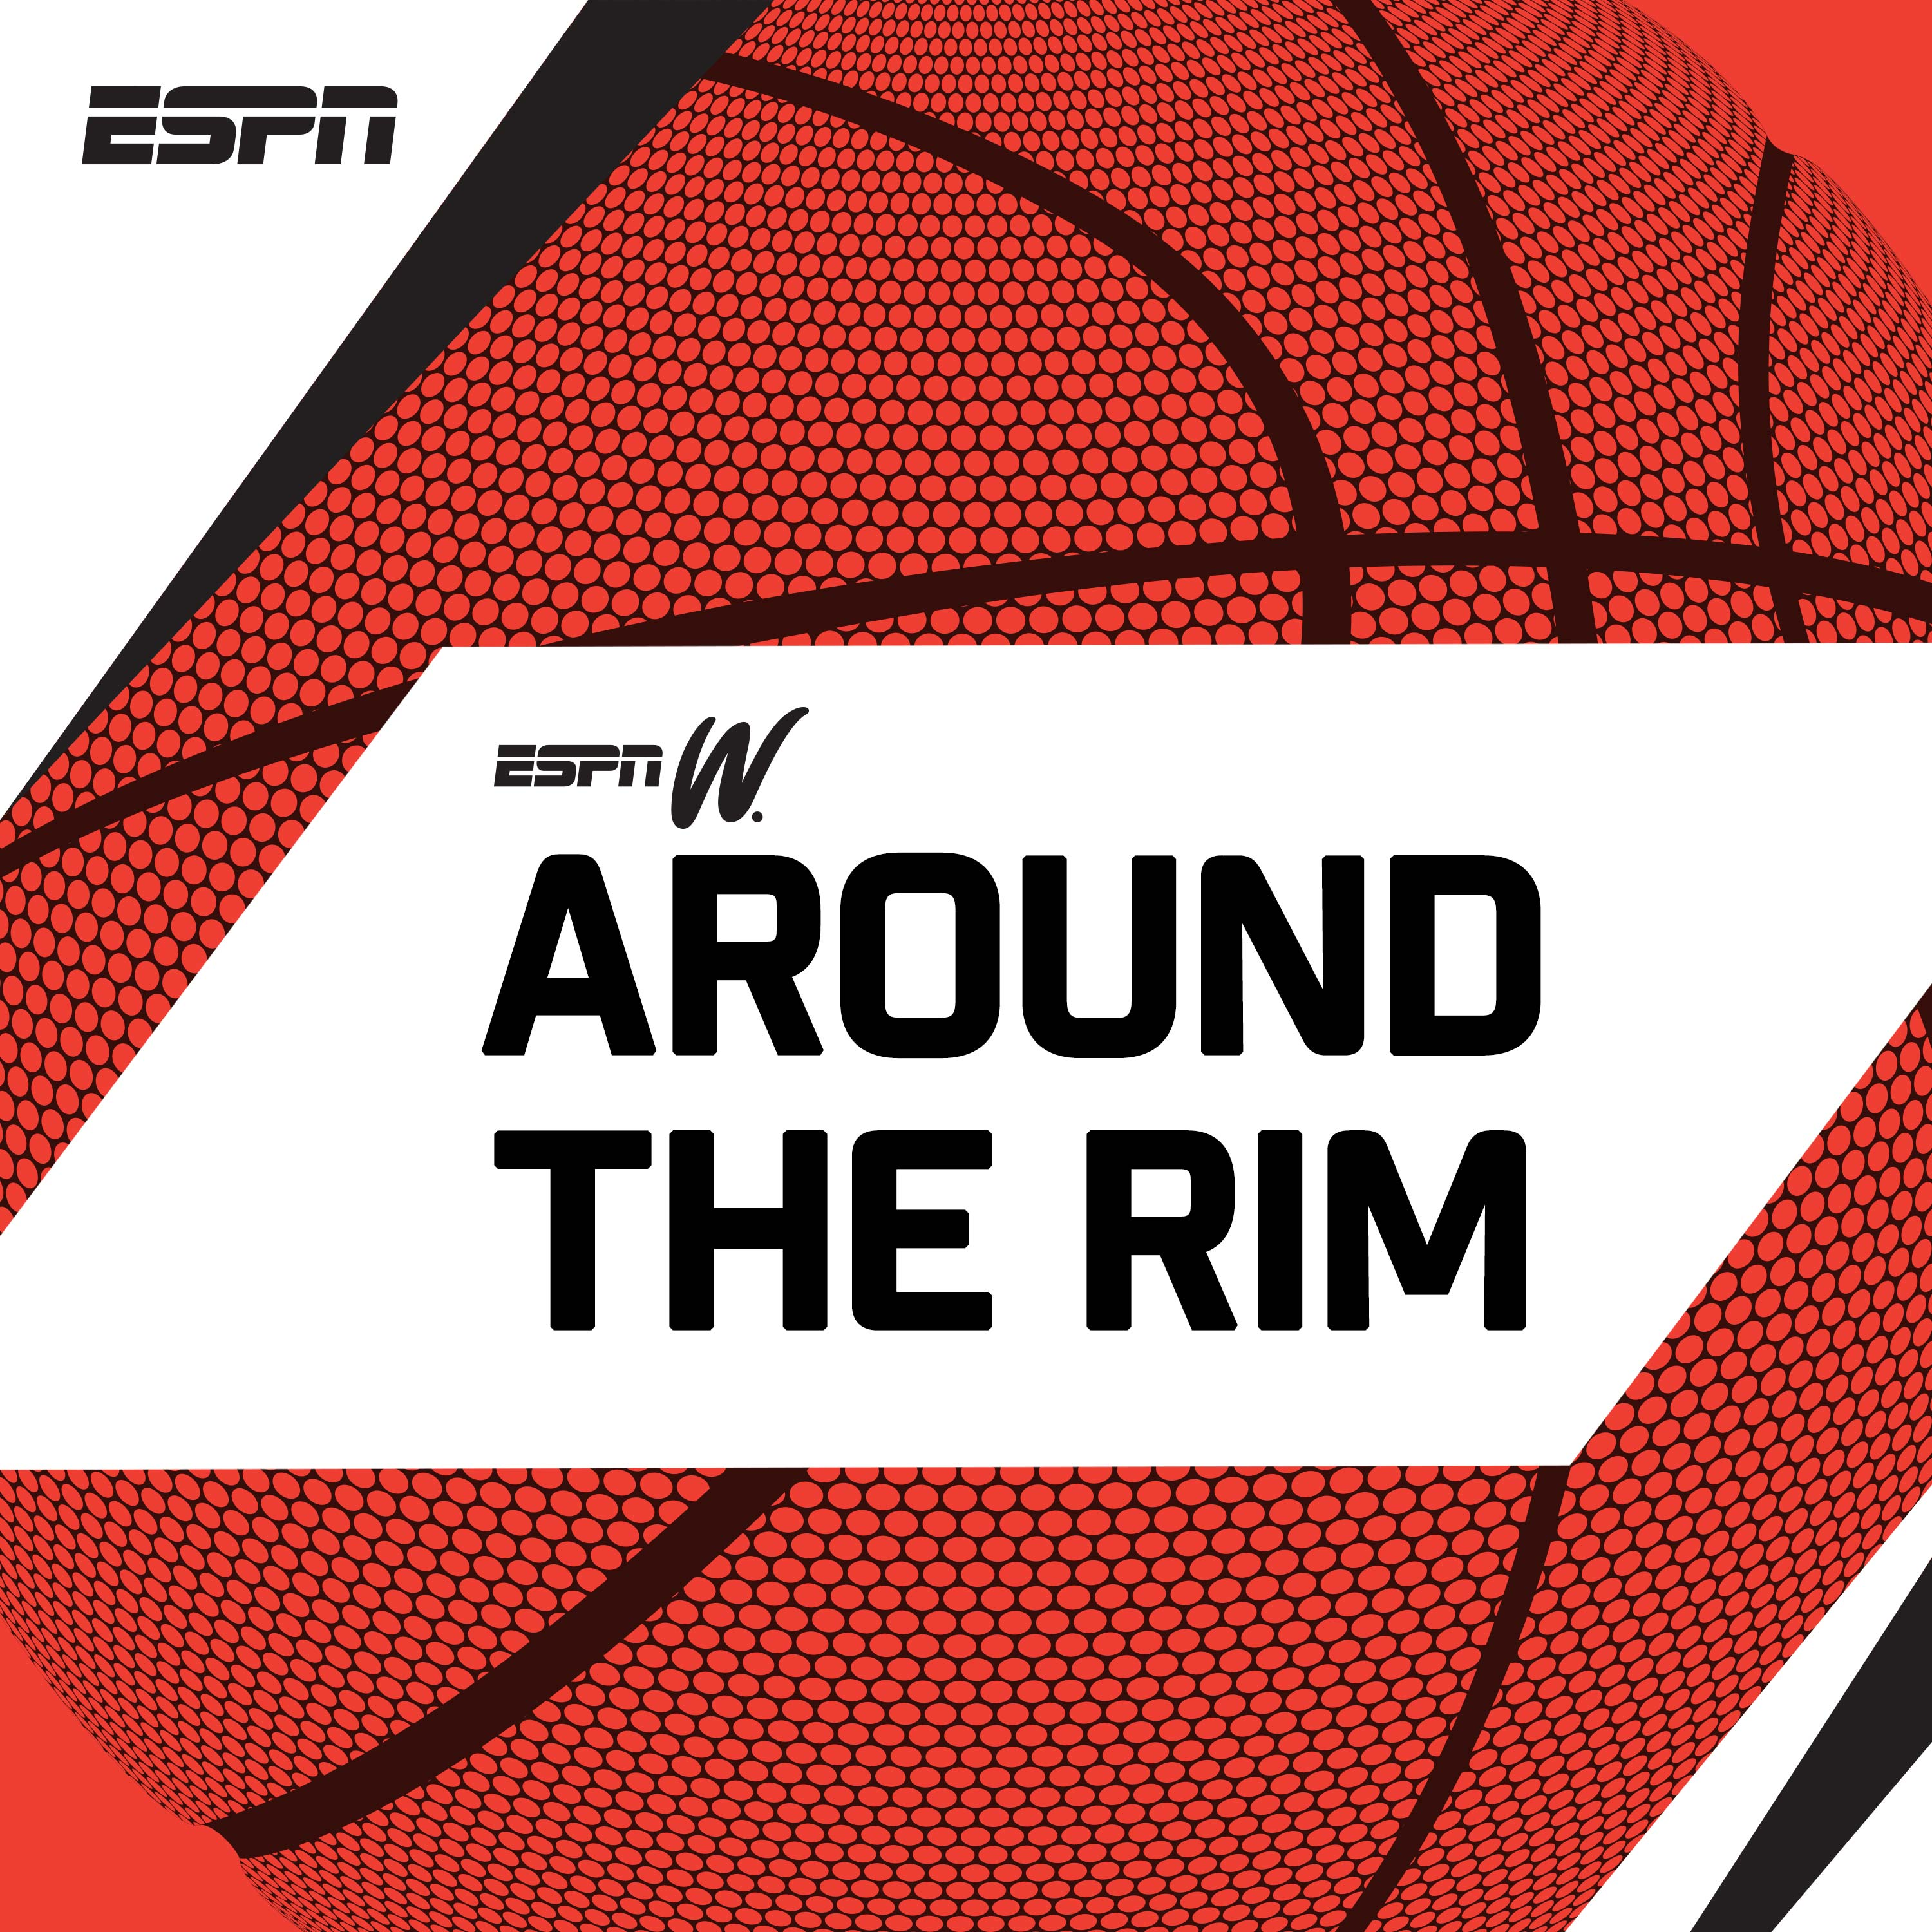 af98cf55f Around The Rim by ESPN on Apple Podcasts